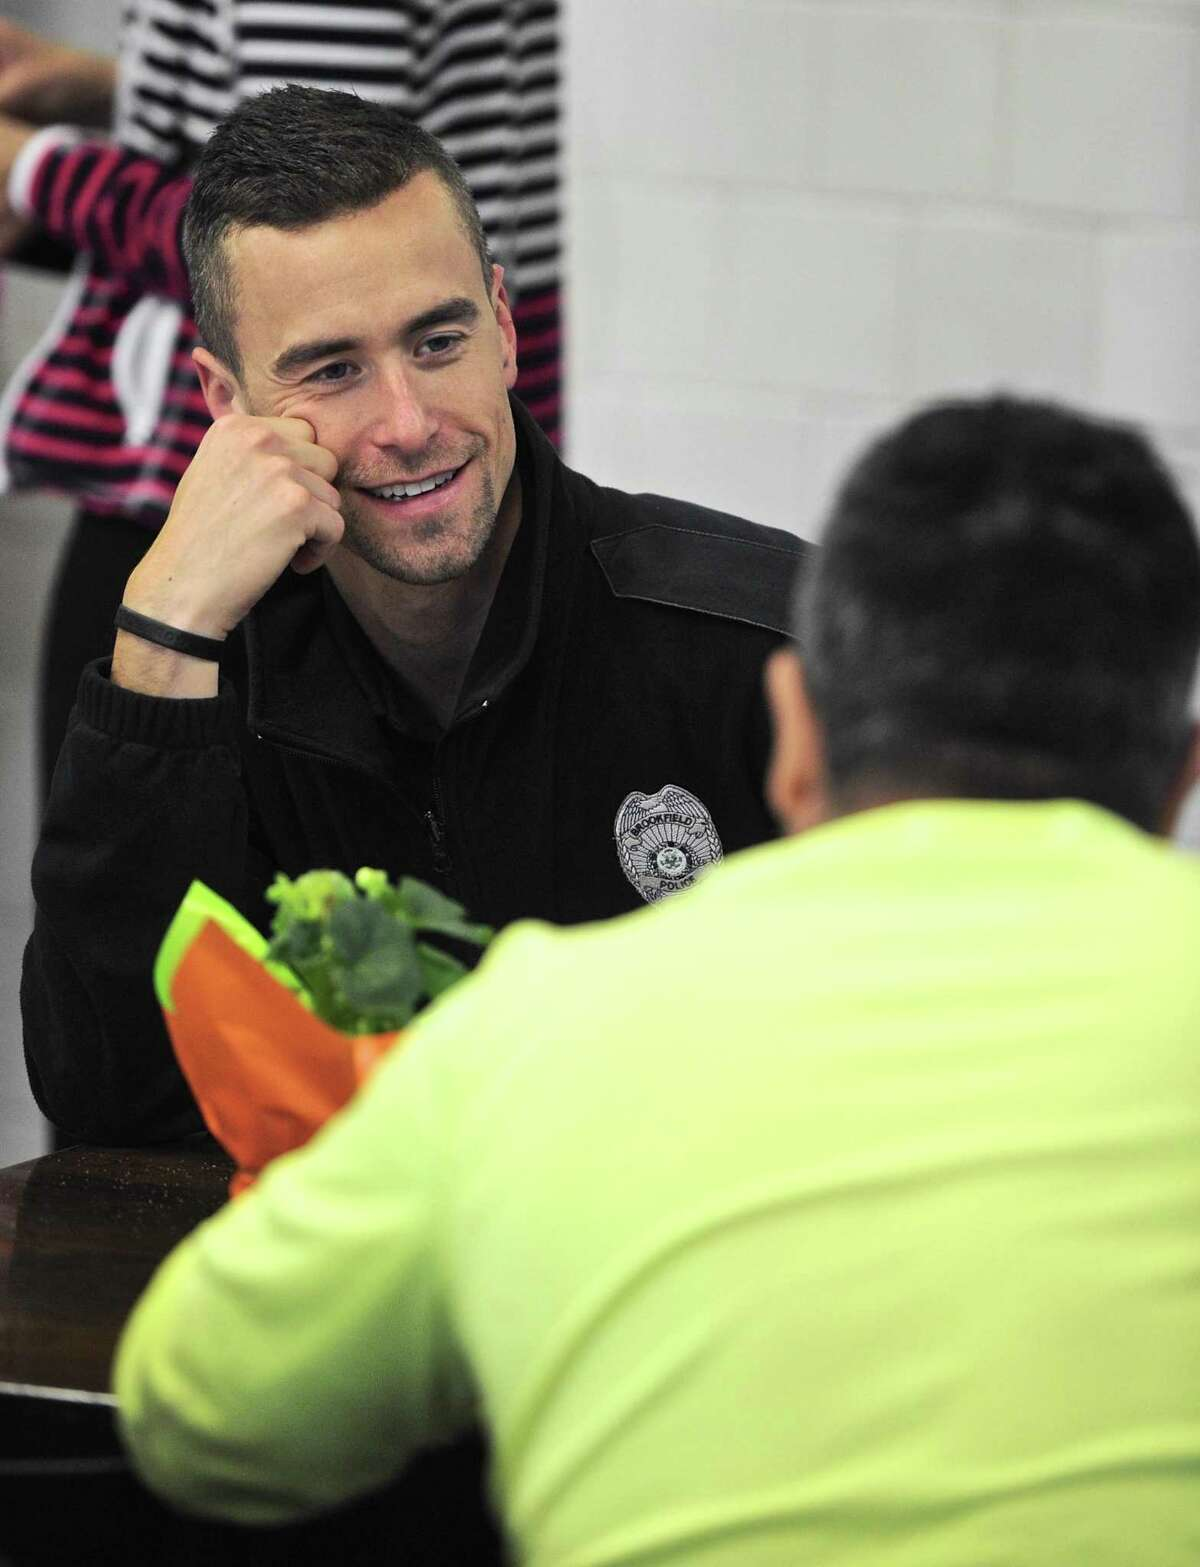 Officer Mitch Heller talks with a customer of Brookfield Deli and Catering. Members of the Brookfield Police Department were at the deli for breakfast, and to have a chance to meet and talk with residents. Saturday, October 8, 2016, in Brookfield, Conn.